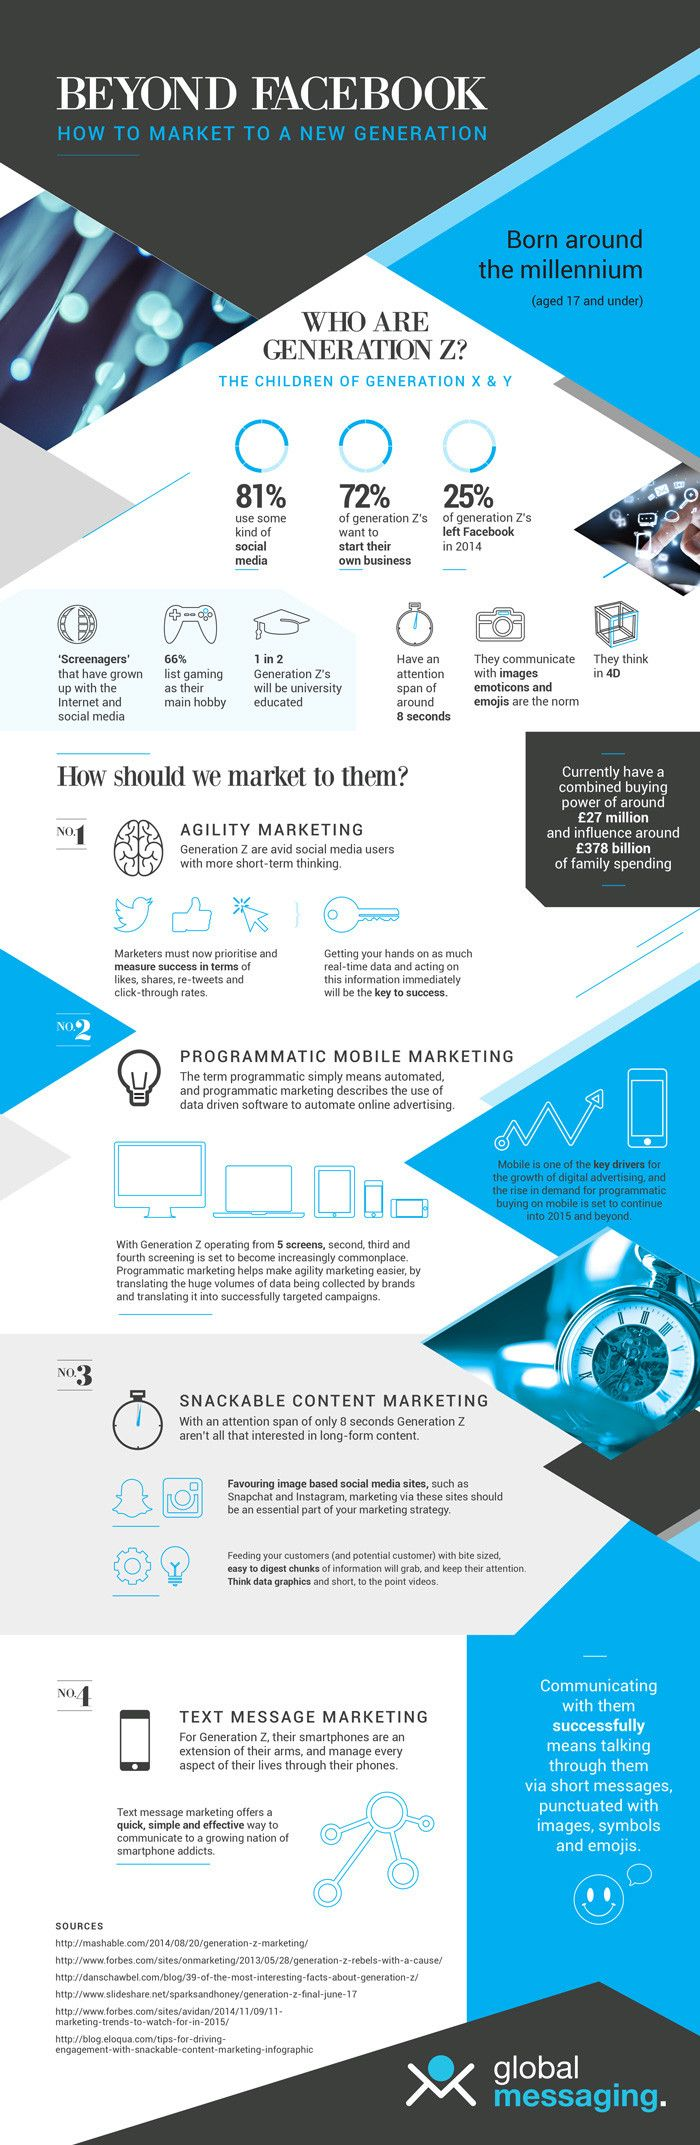 Beyond Facebook - Marketing To A New Generation - #infographic  Visit our website at www.firethorne.org! #creativeadvertising #advertisement #creative #ads #graphic #design #marketing #contentmarketing #content